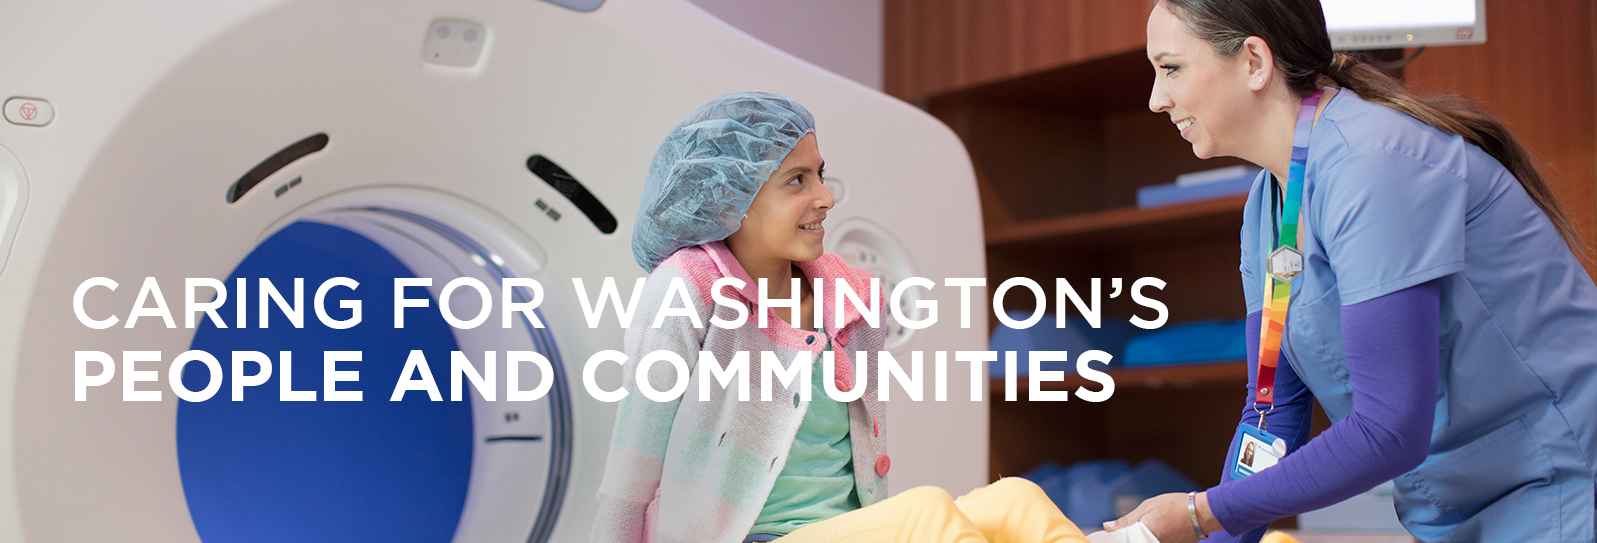 Caring for Washington's People and Communities